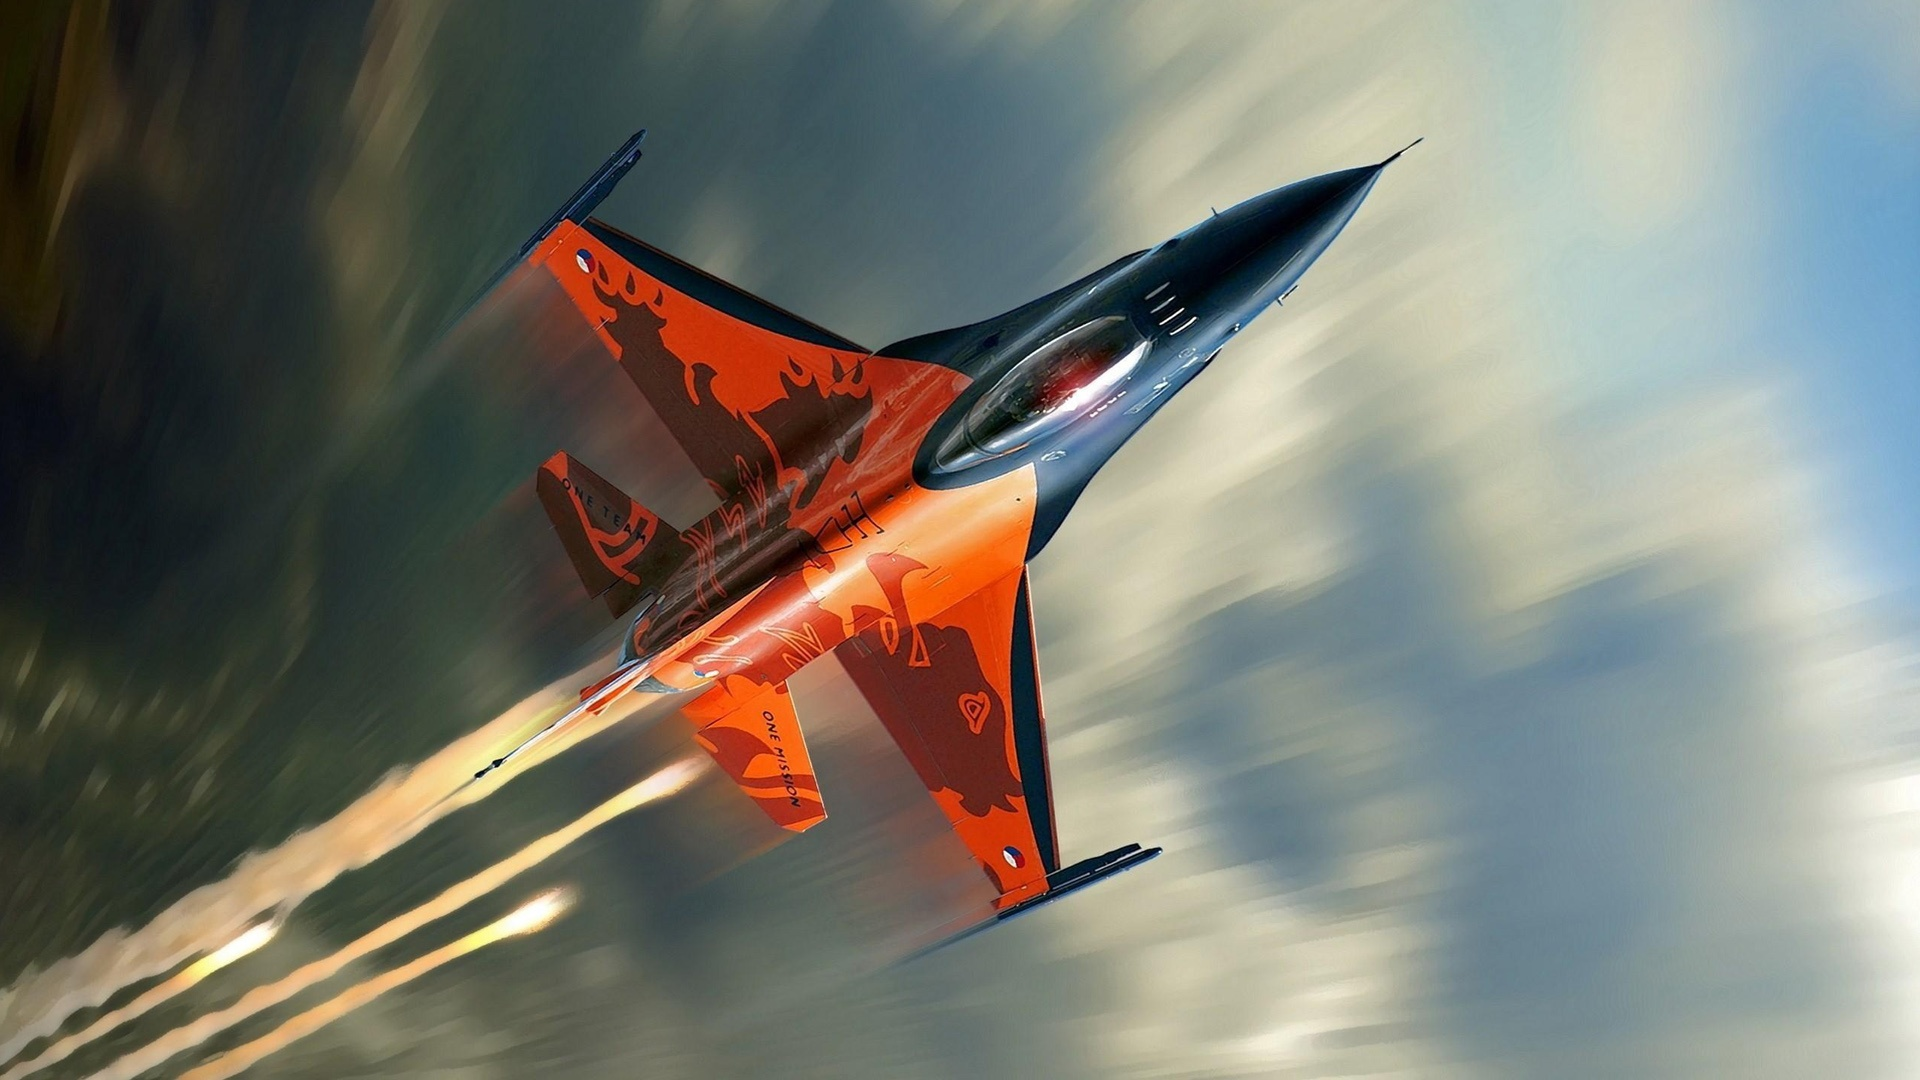 plane jet hd wallpapers hyper sonic fighter plane hd wallpapers ...